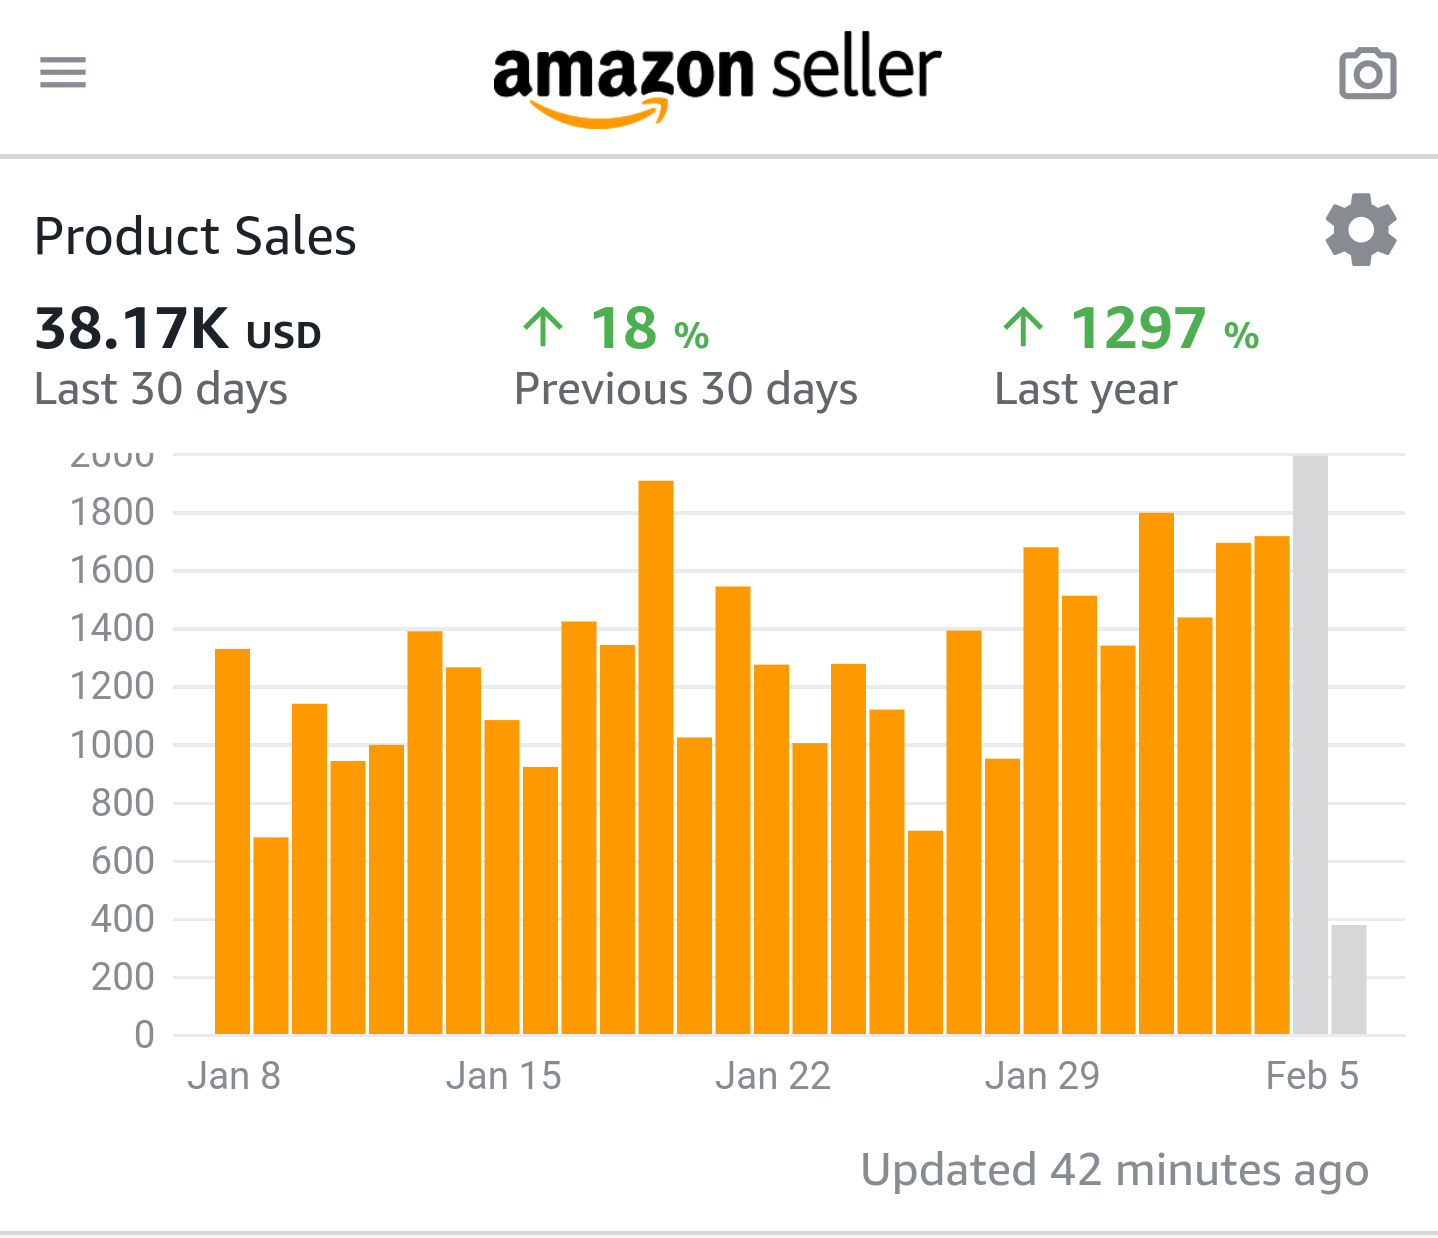 Amazon Seller App Sales in Last 30 Days of 38.17 Thousand Dollars